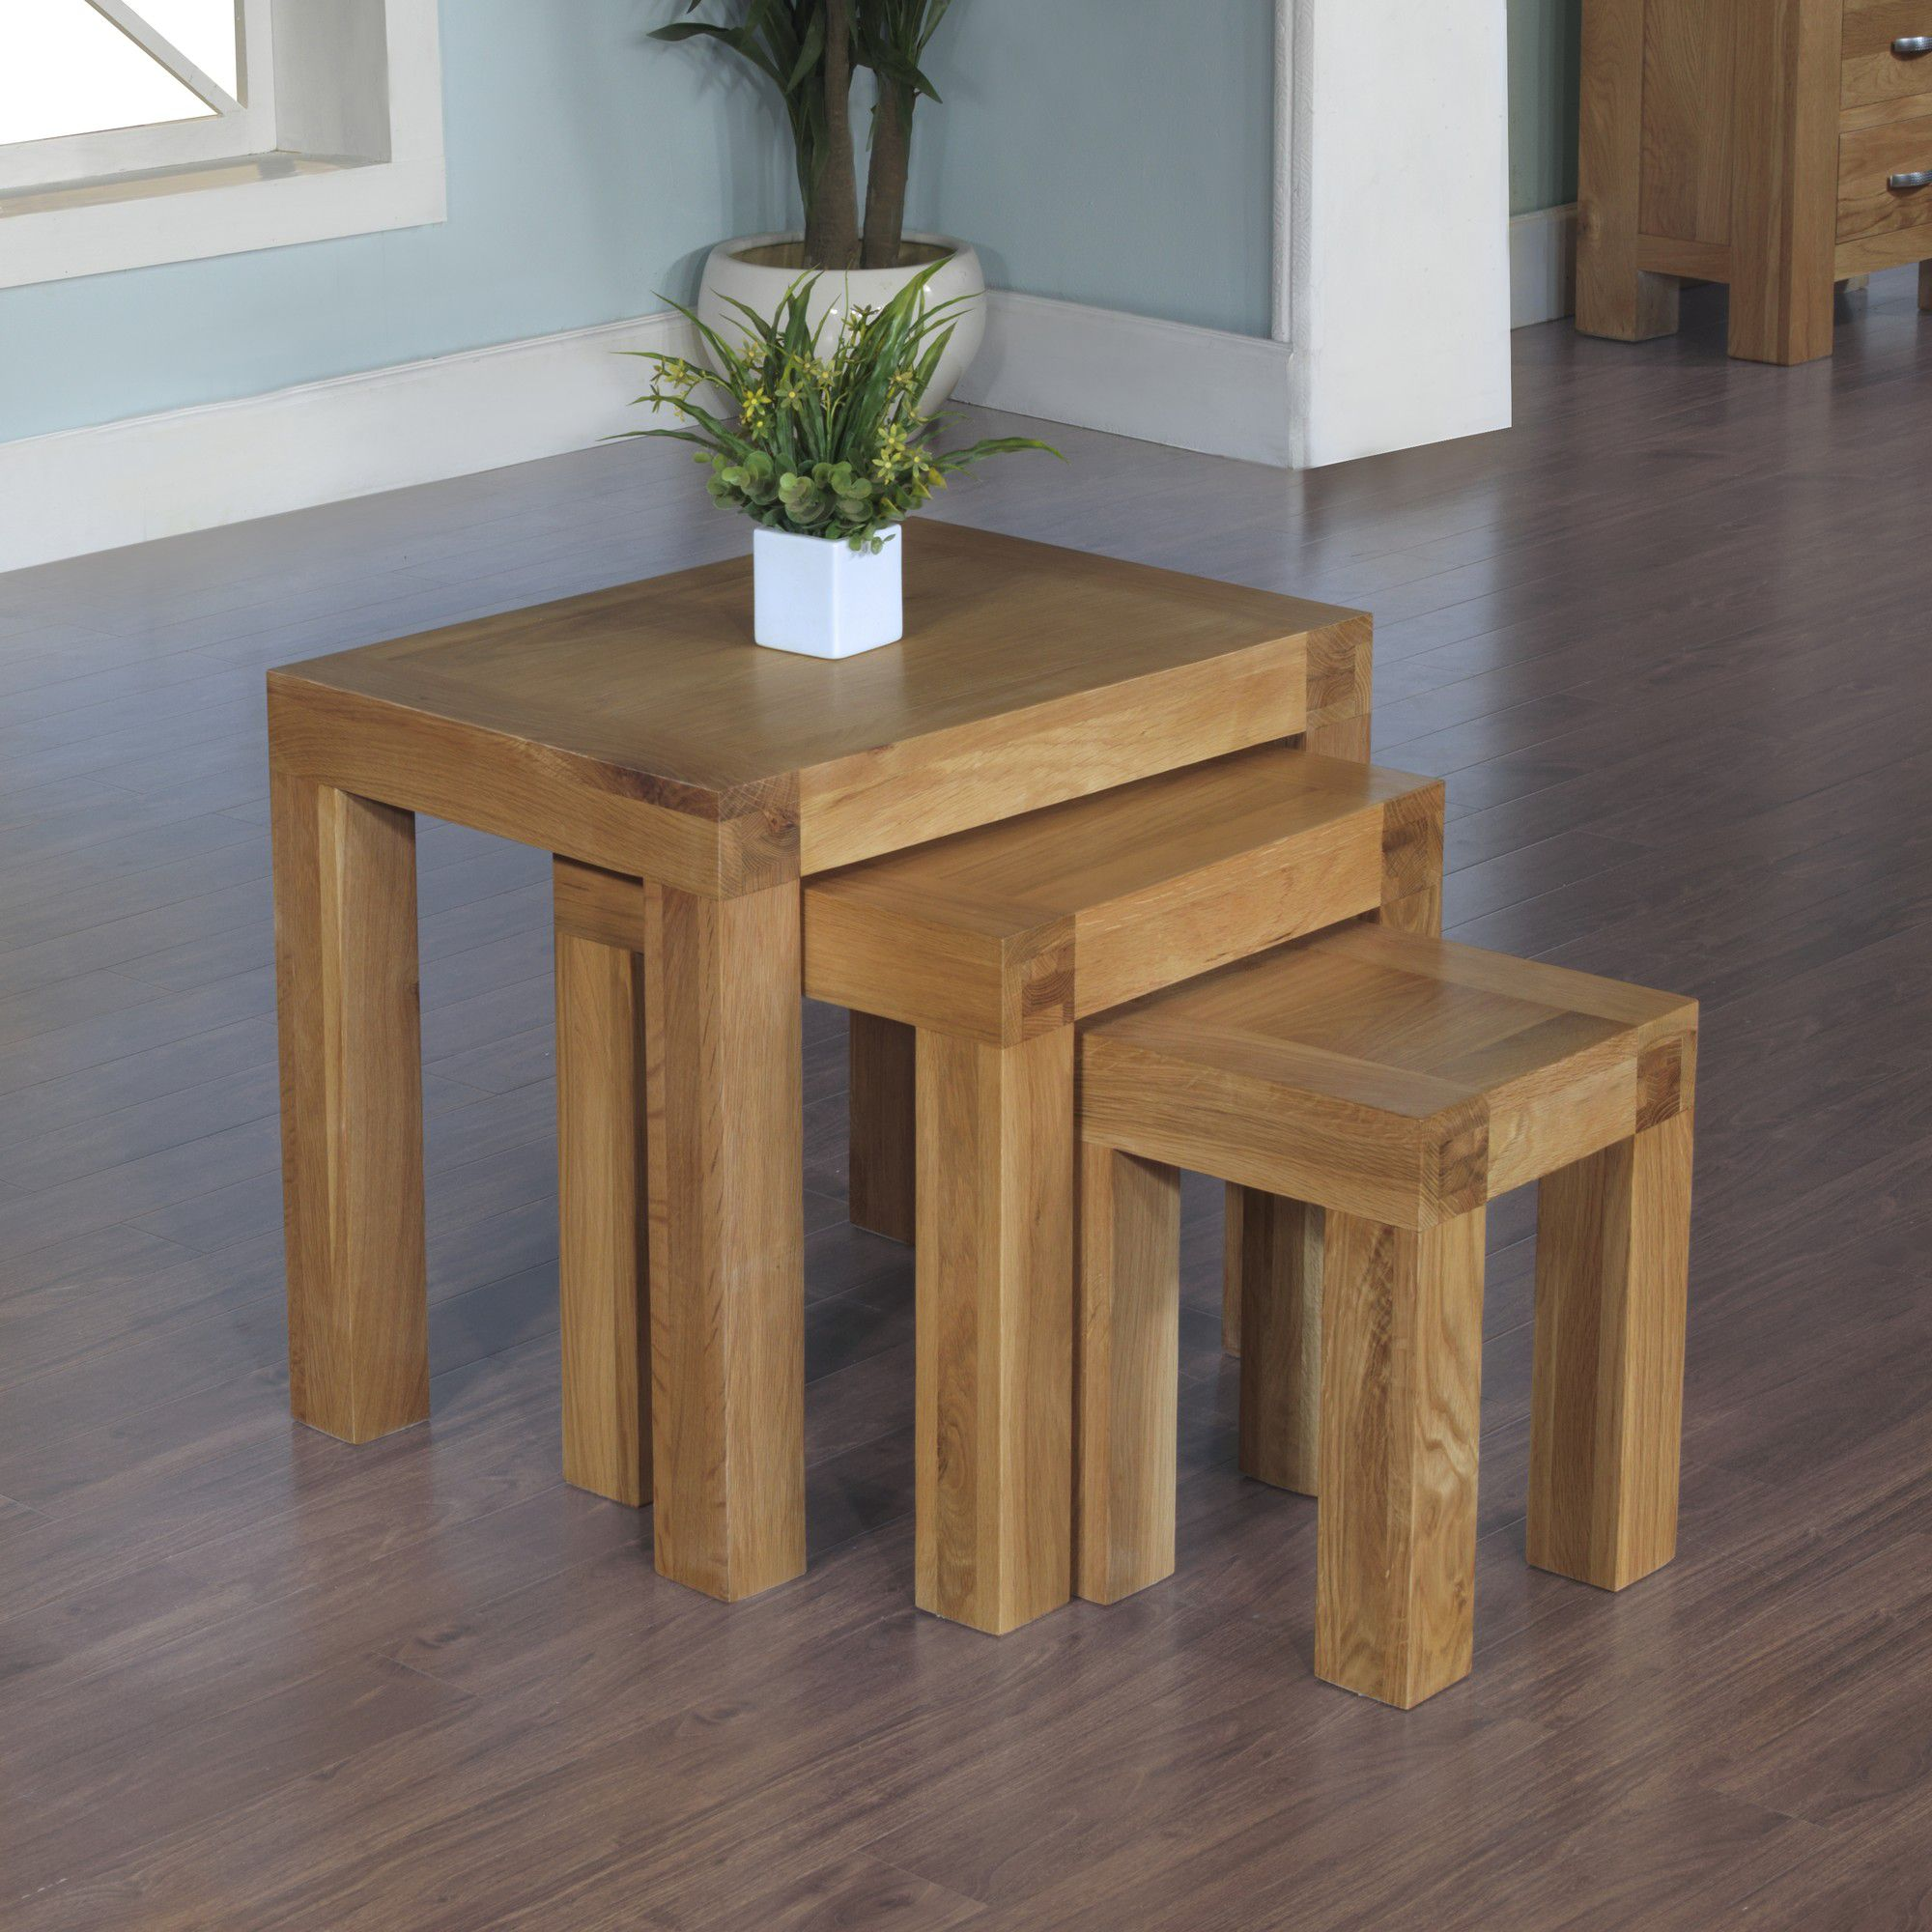 Hawkshead Rustic Oak Blonde Nest of 3 Tables at Tesco Direct